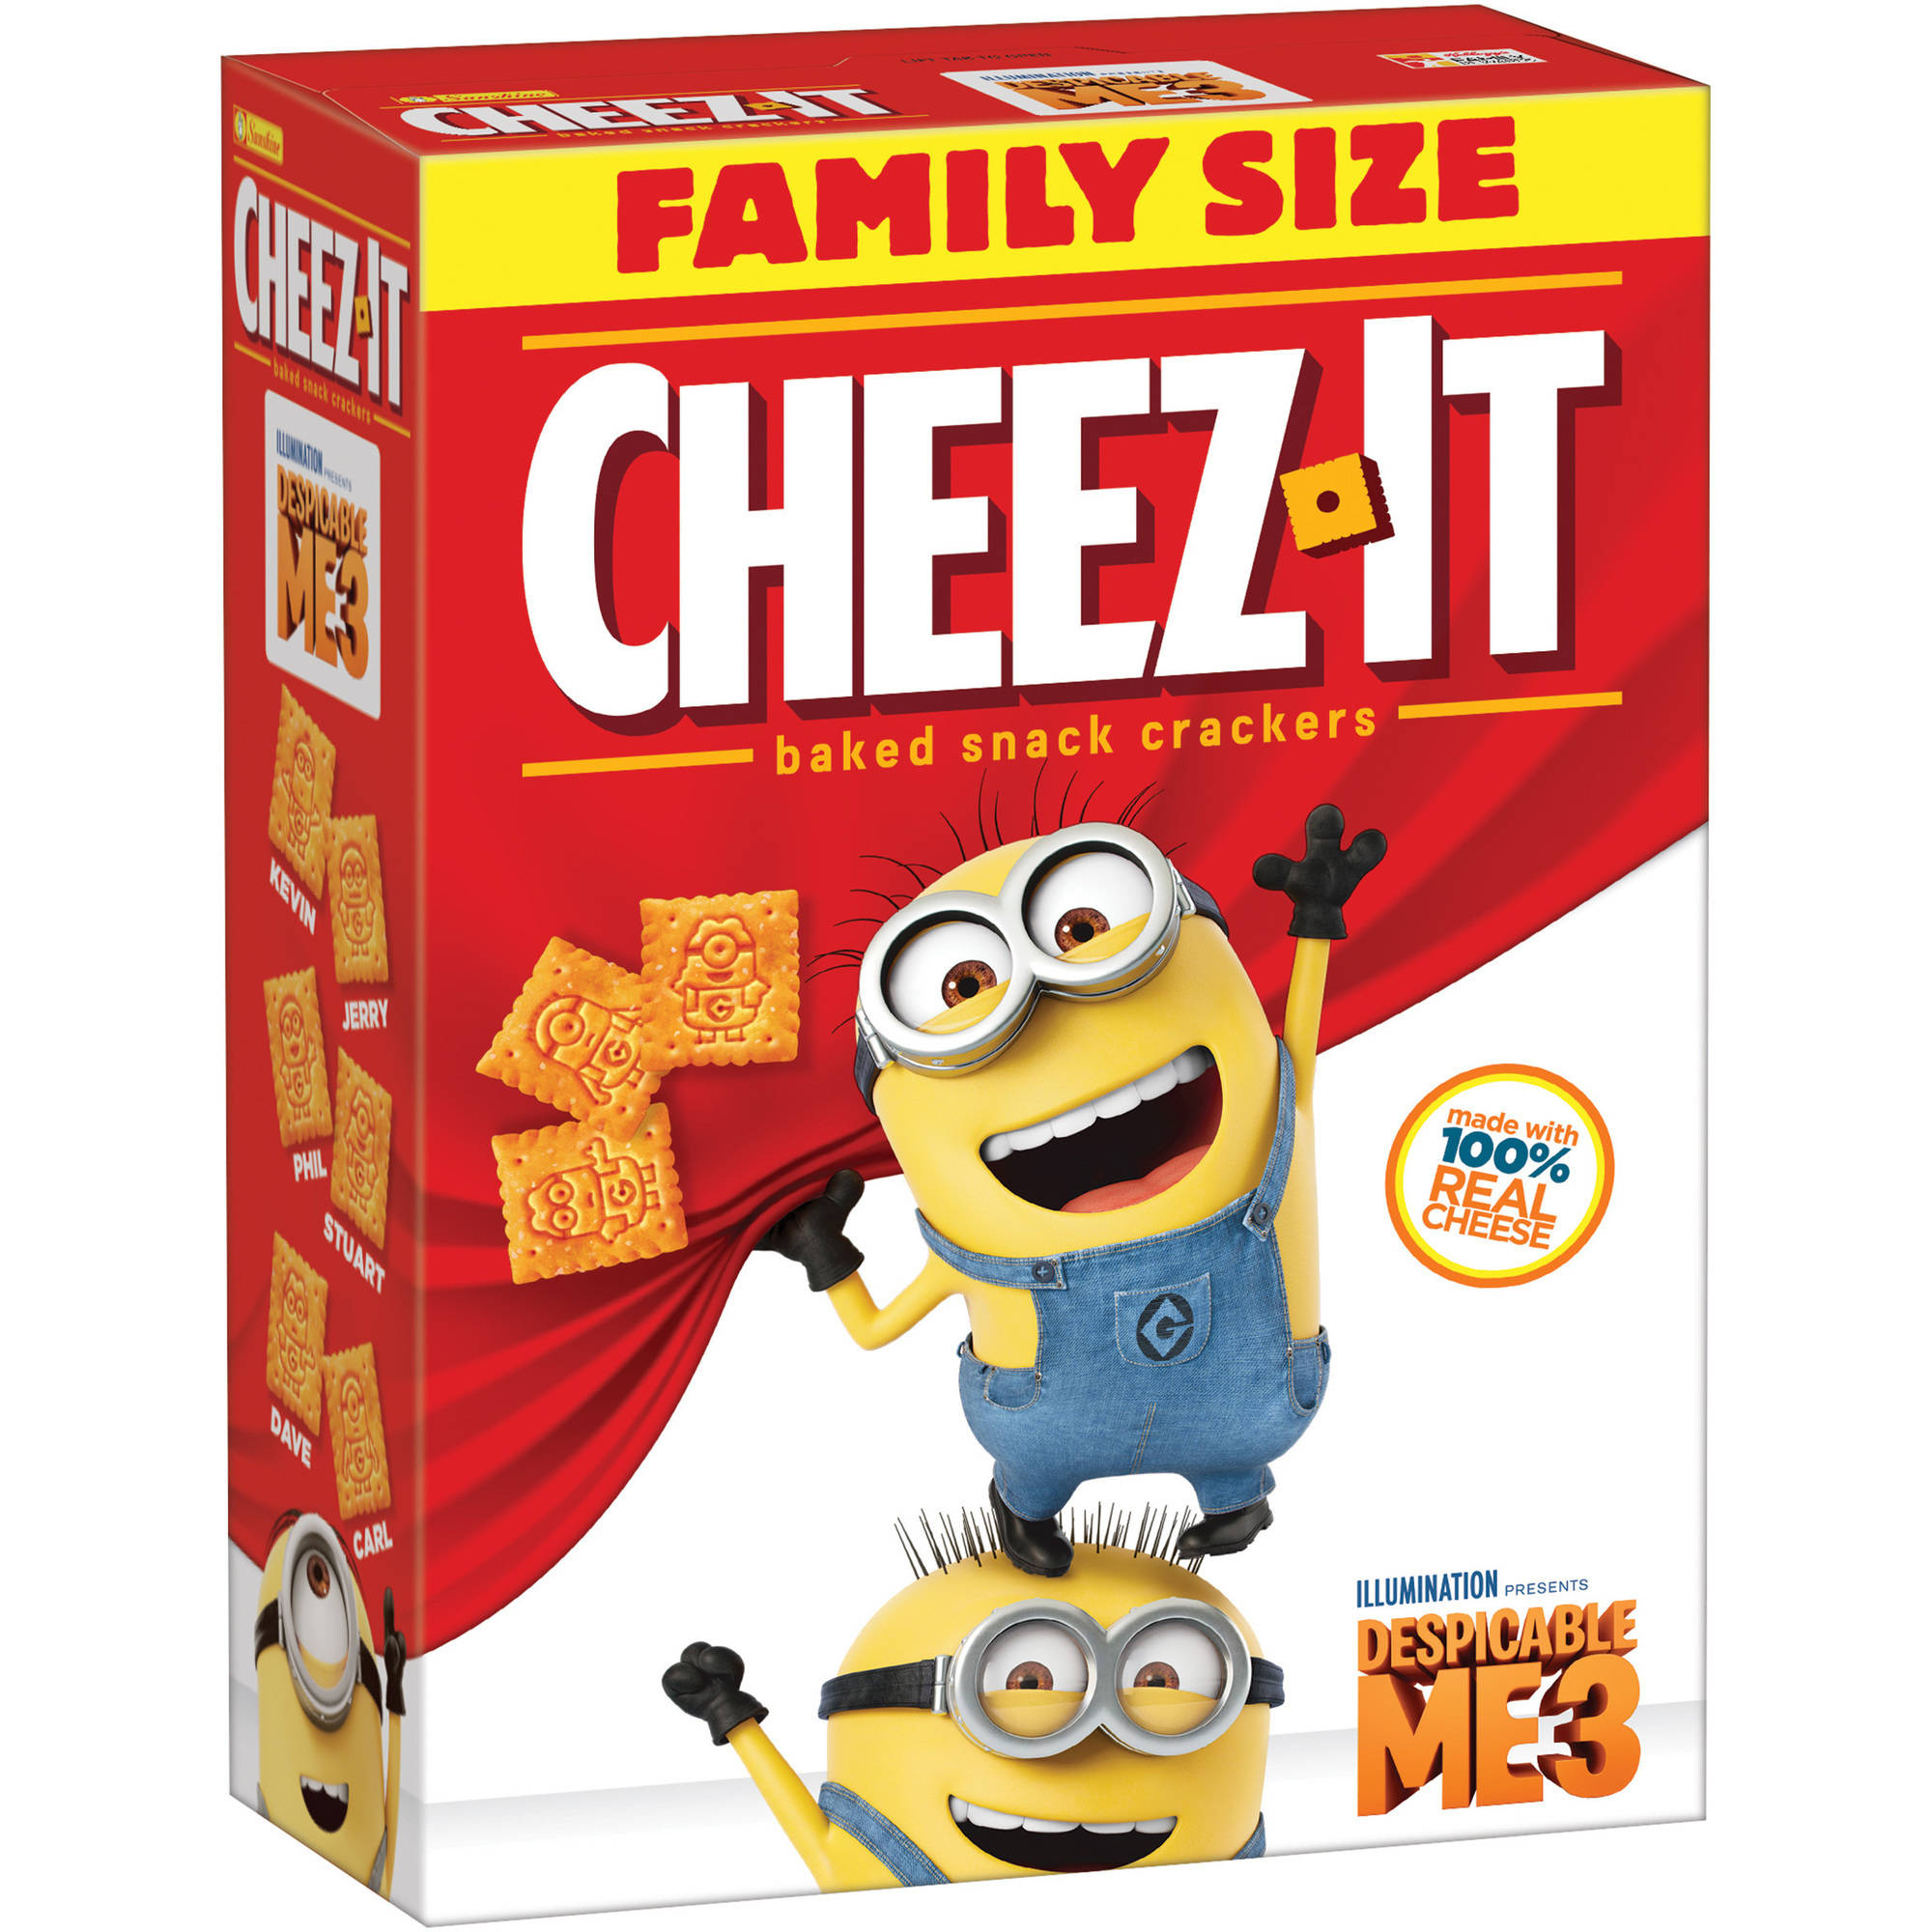 Cheez-It The Amazing Spider-Man 2 Baked Snack Crackers, 21 oz 2410010327